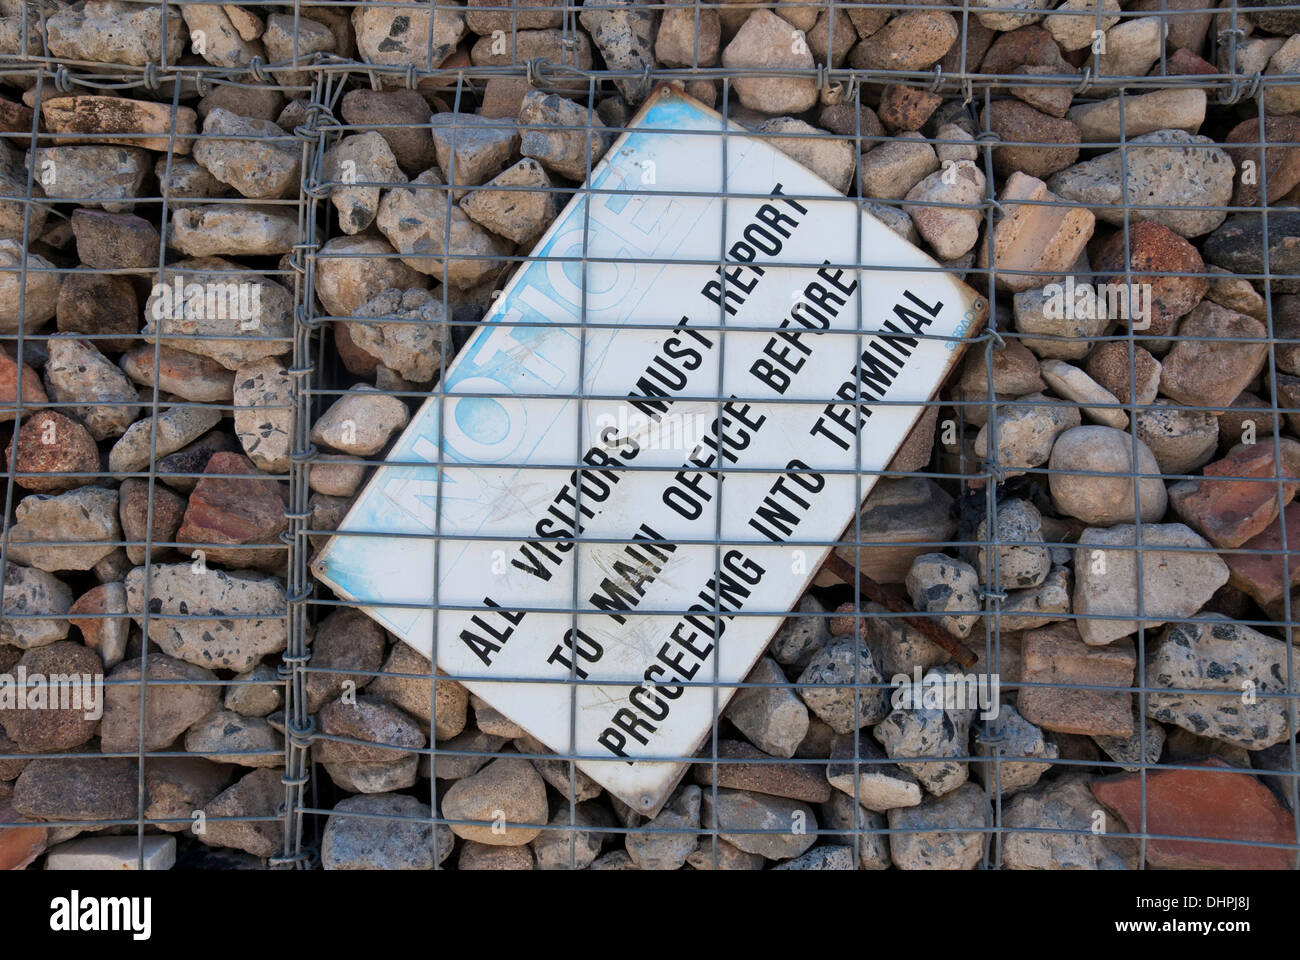 Industrial sign wedged into rubble wall in a Sydney park, Australia - Stock Image